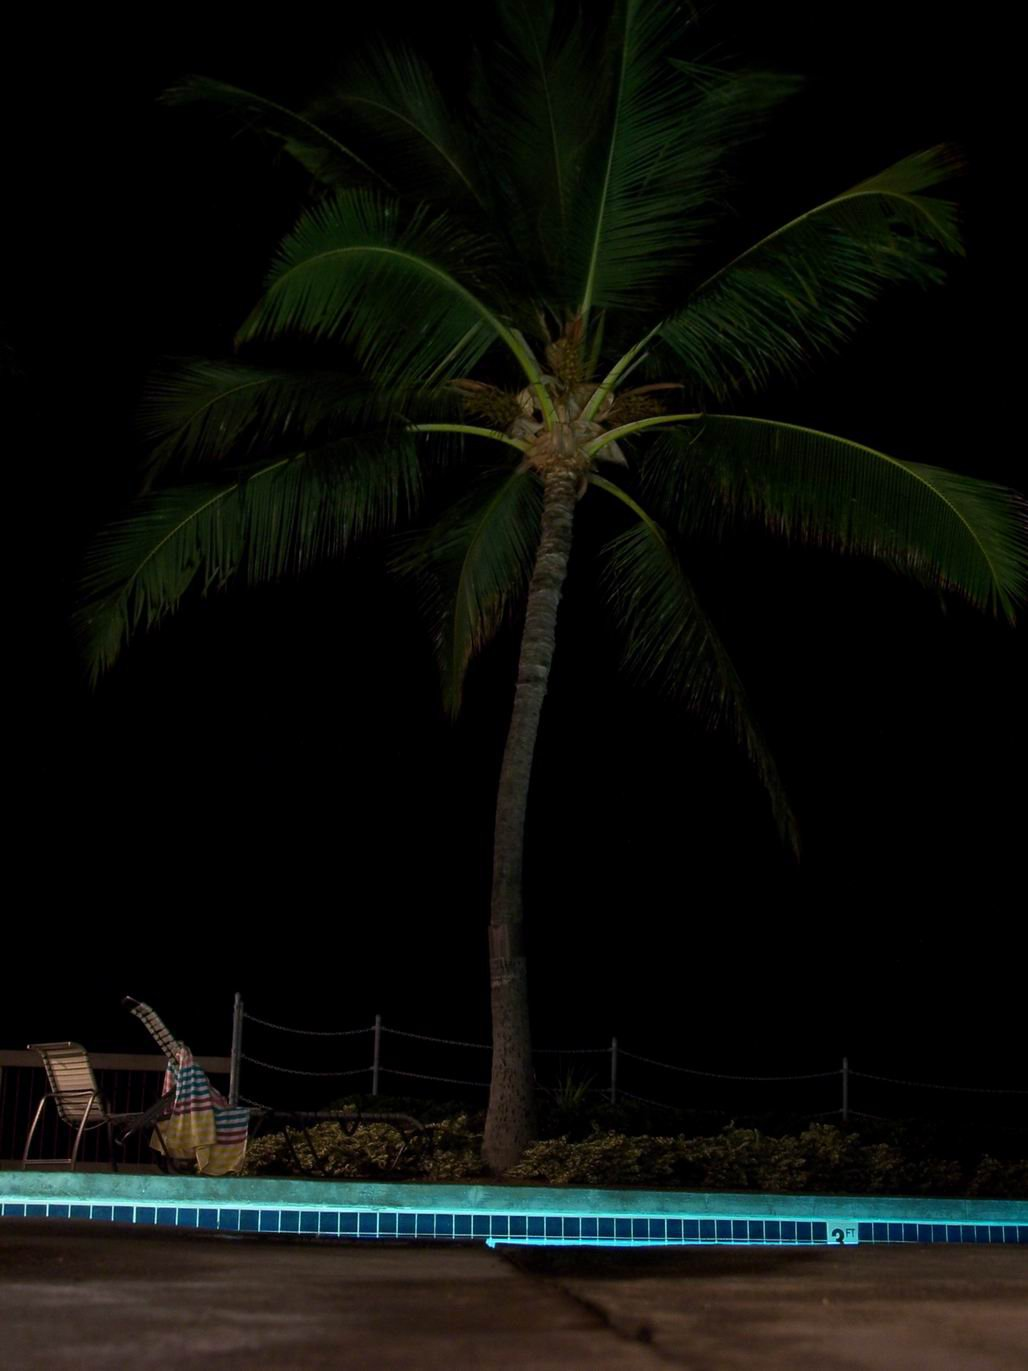 Long shutter at night by the pool